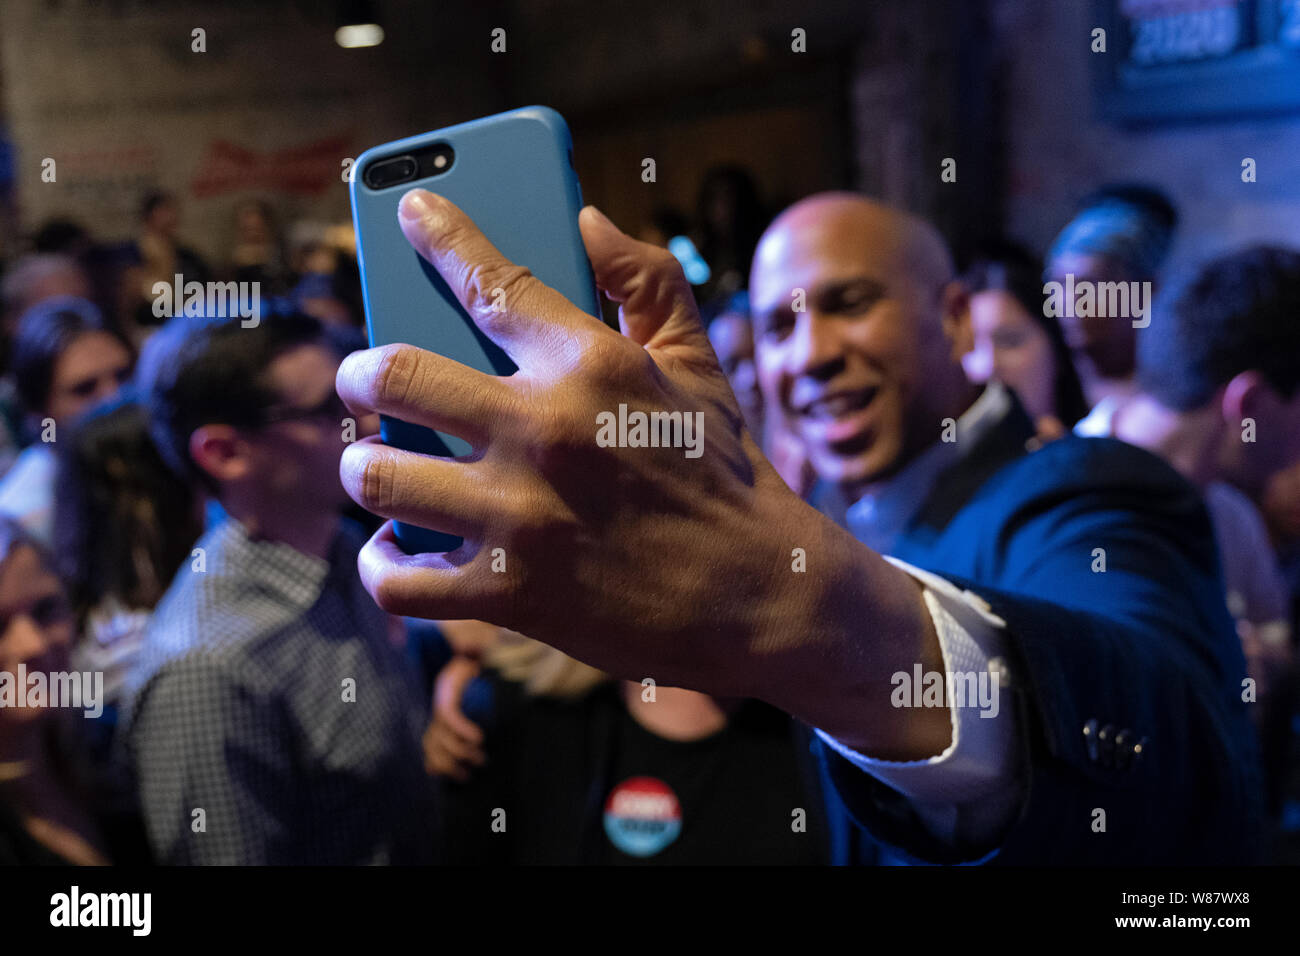 Democratic Presidential Candidate Cory Booker (D-NJ) appears during a Philadelphia Rise Event at The Fillmore Philadelphia. Stock Photo